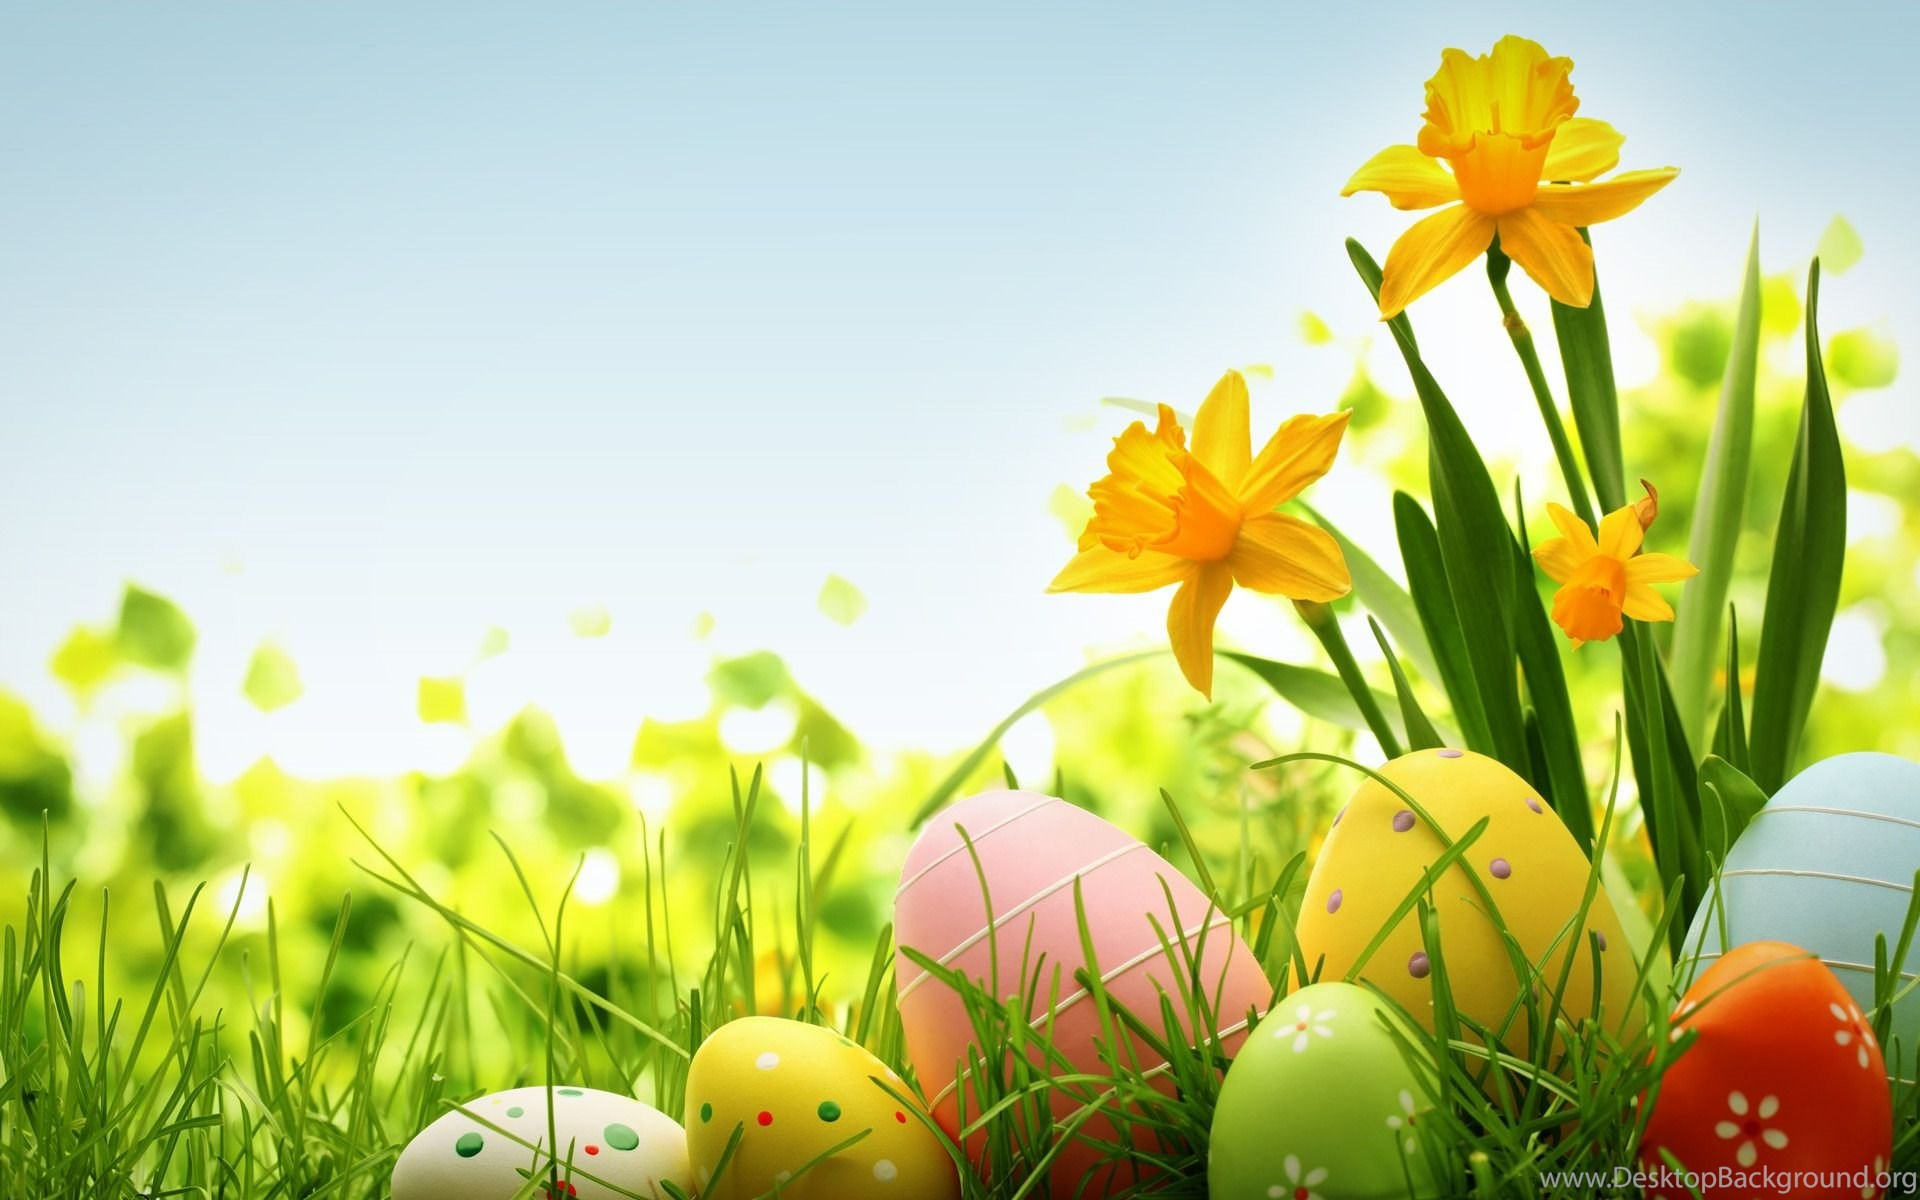 Easter Wallpapers Images Pictures Backgrounds HD Free Desktop